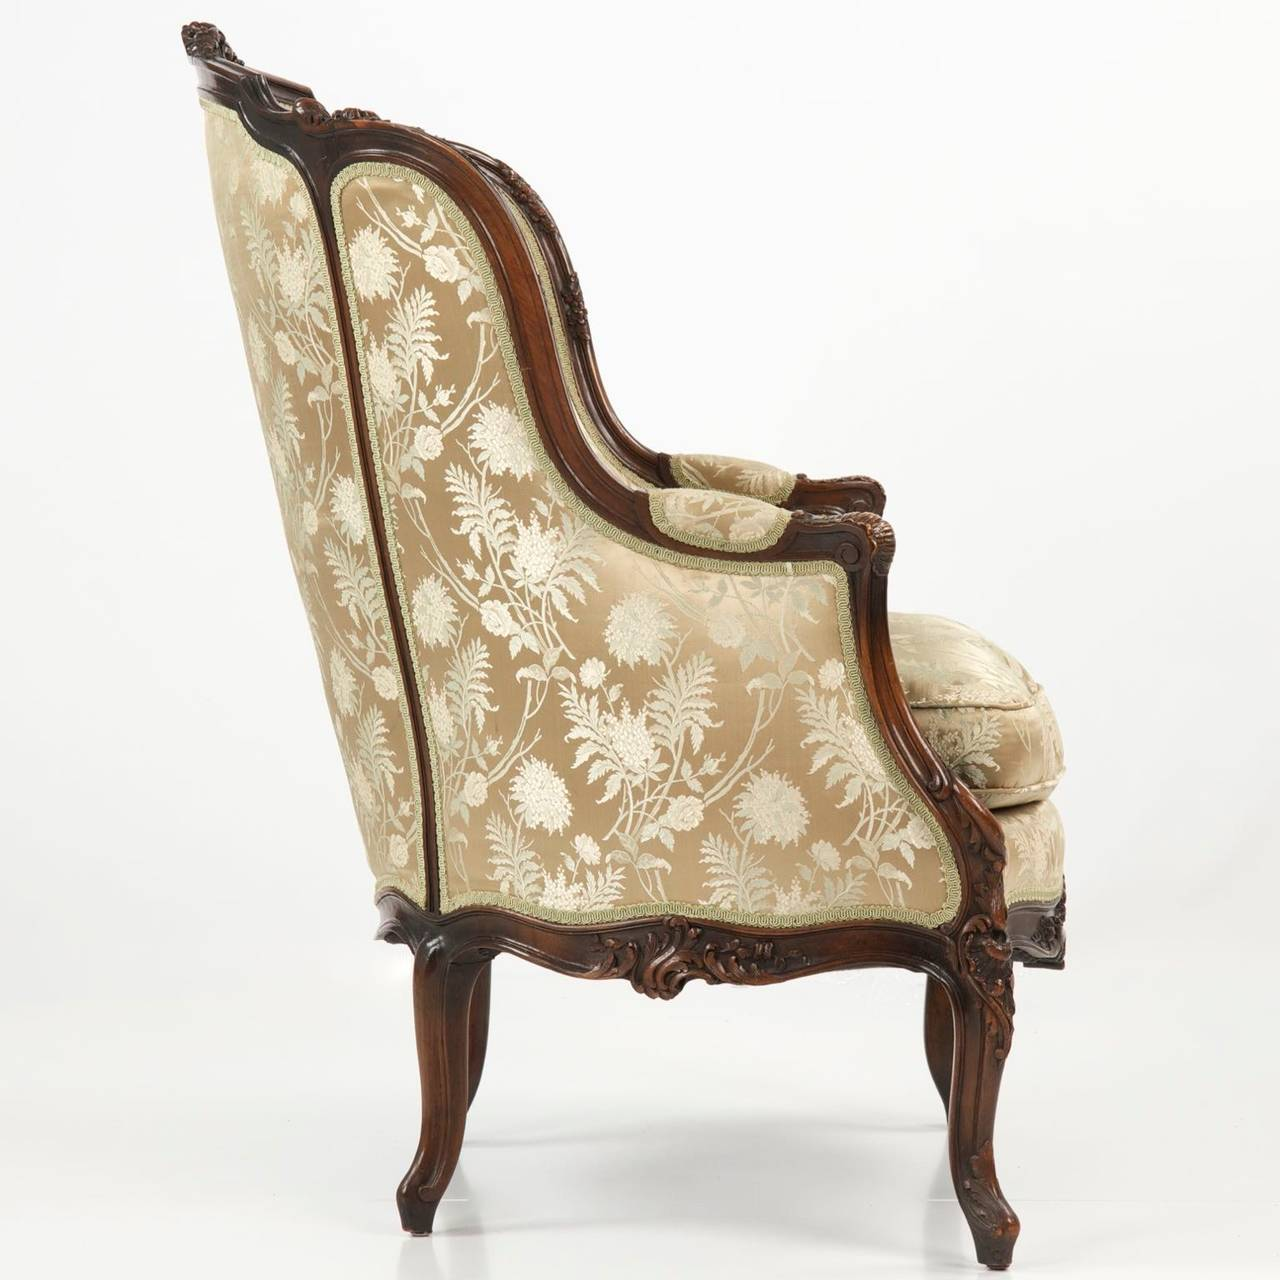 louis xv chair chairs that rock swivel and recline 19th century rococo revival antique bergere armchair in french taste for sale